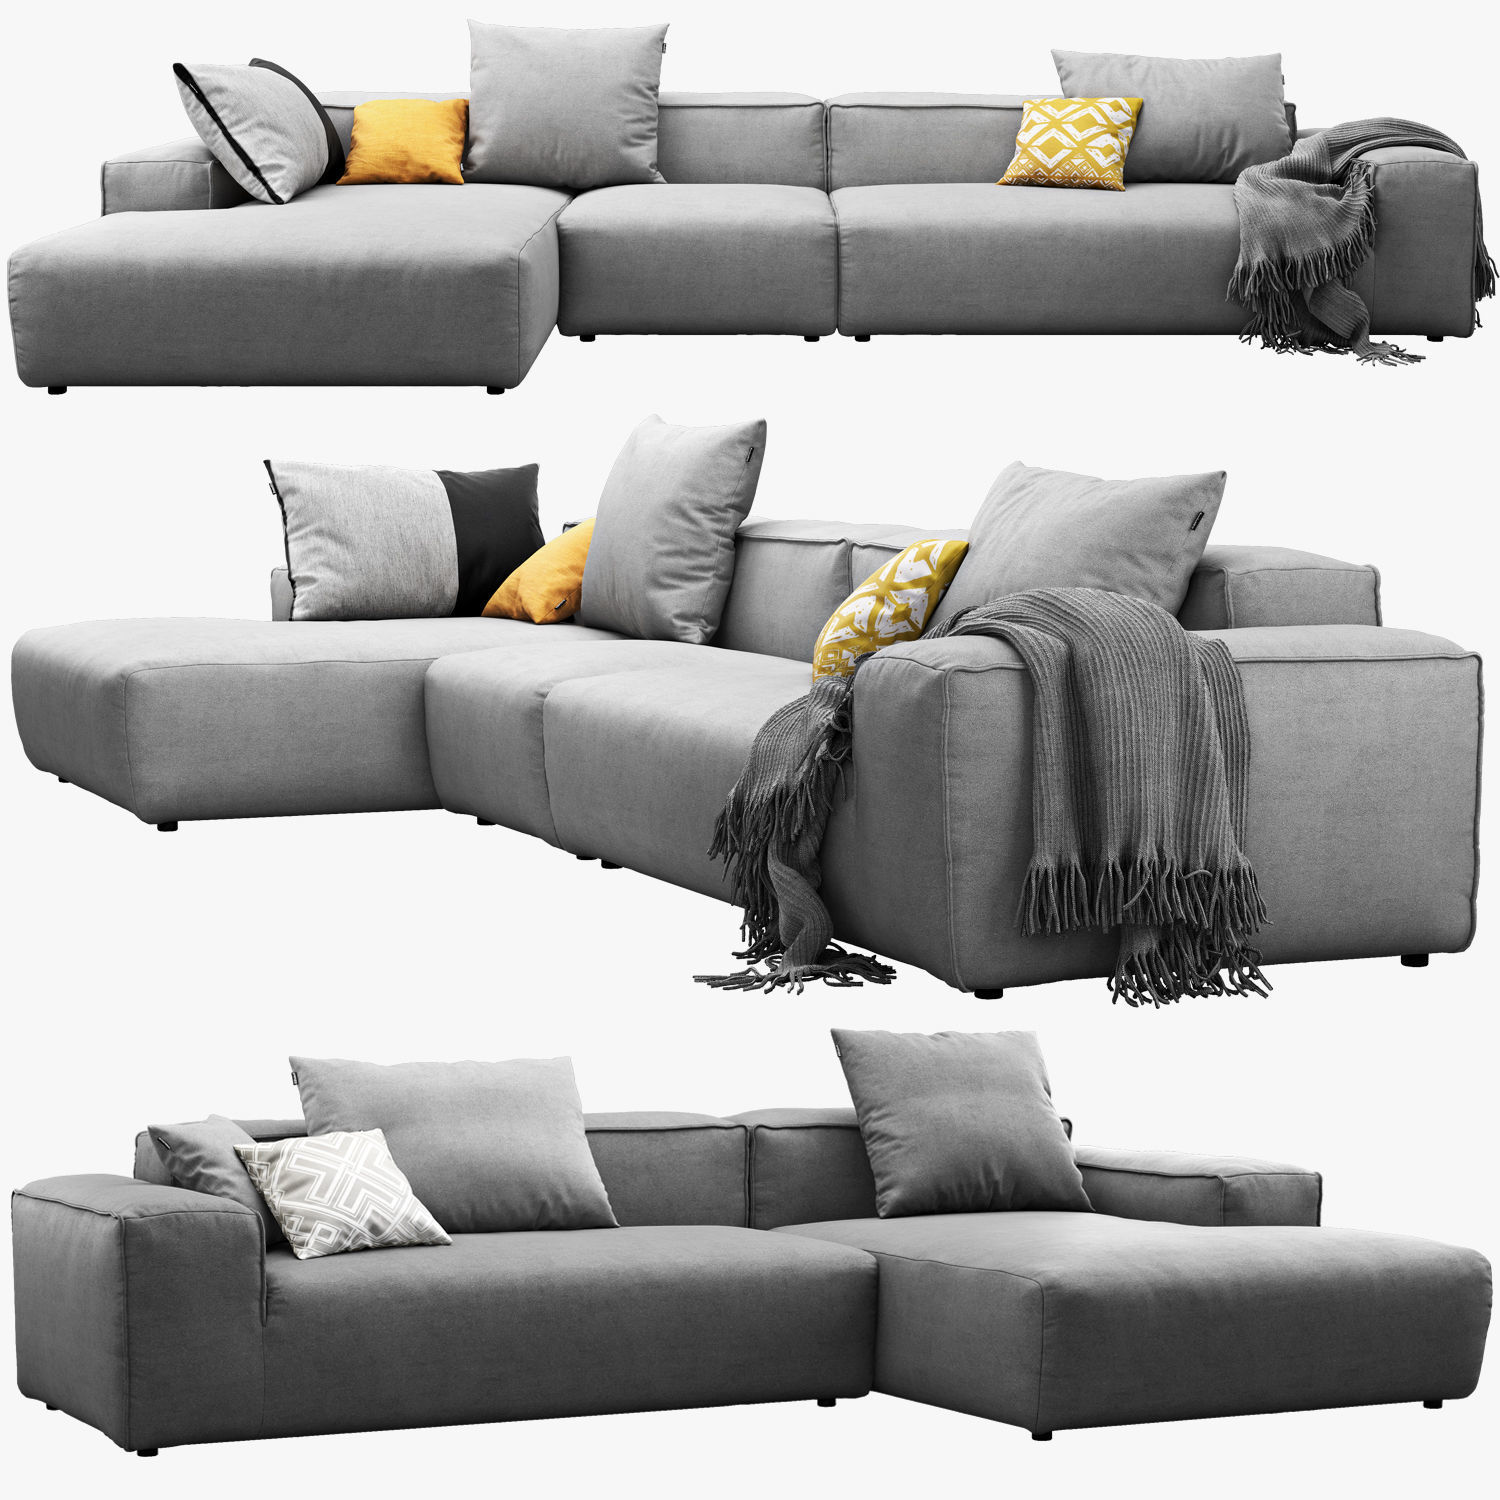 Freistil Sofa 3d Model Rolf Benz Freistil 175 Modular Sofa Set 2